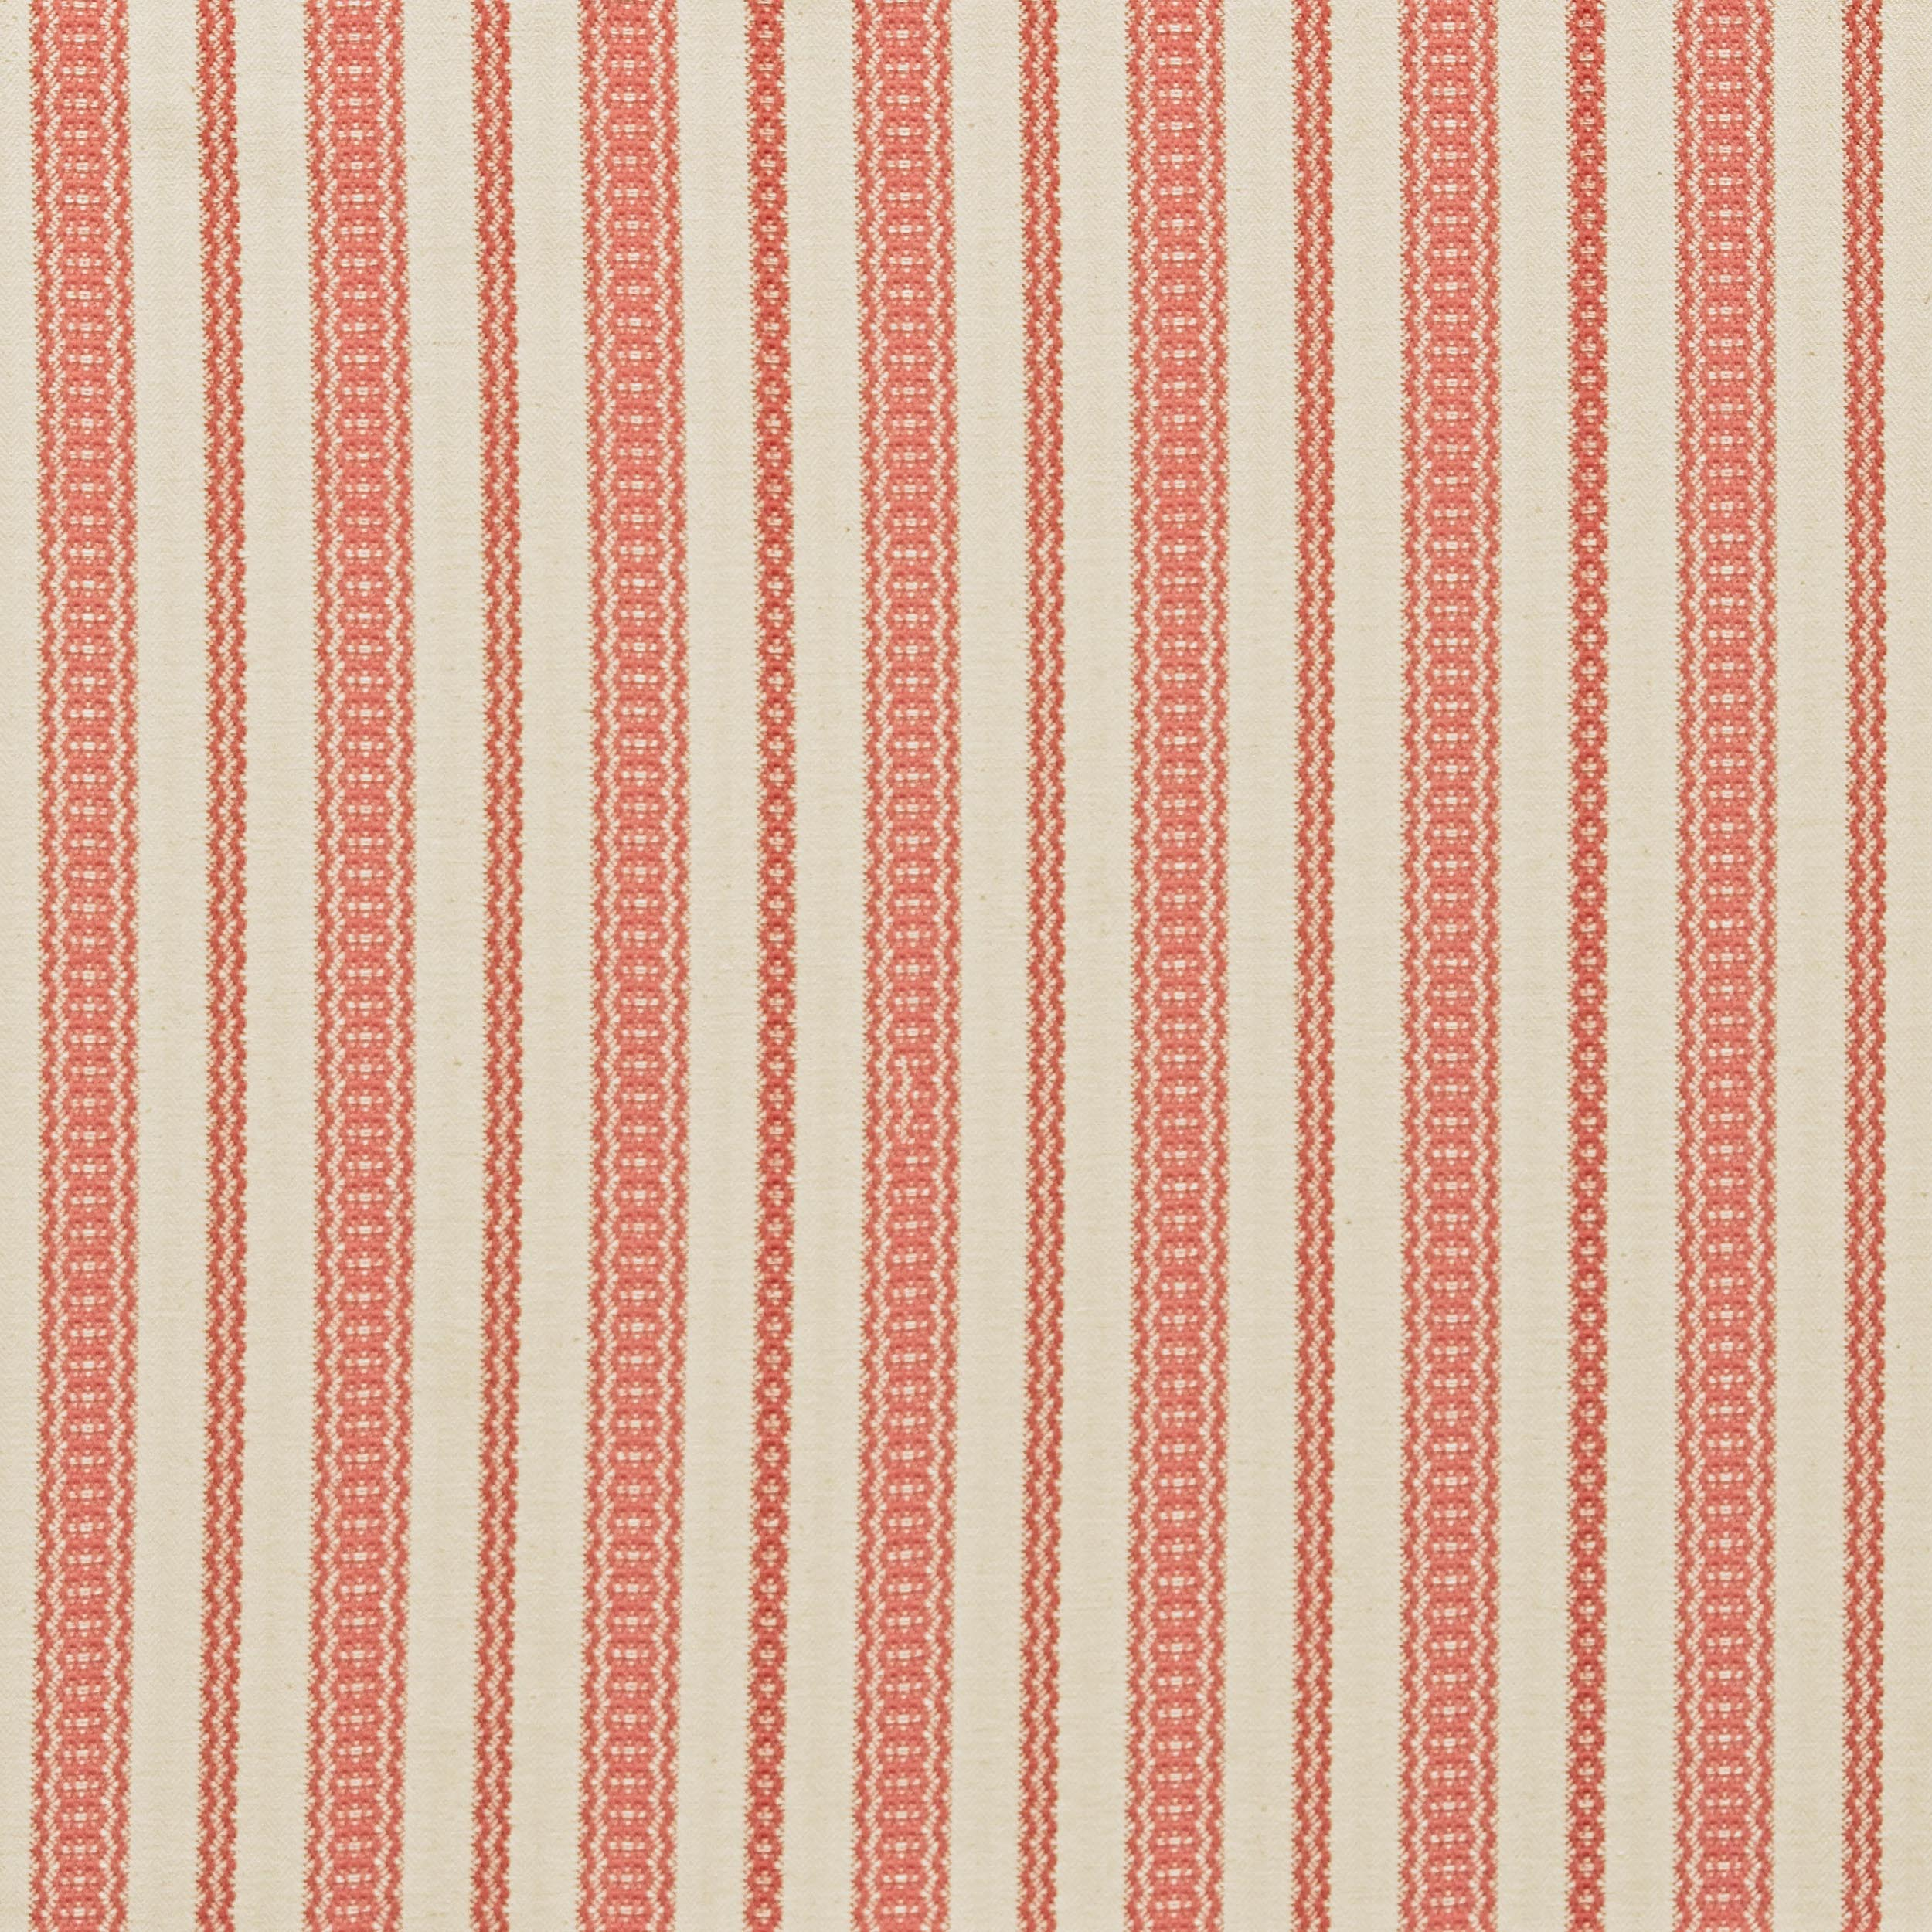 <p><strong>PAYSON</strong>coral 1713-03<a href=/the-brooke-collection/coral-1713-03>More →</a></p>